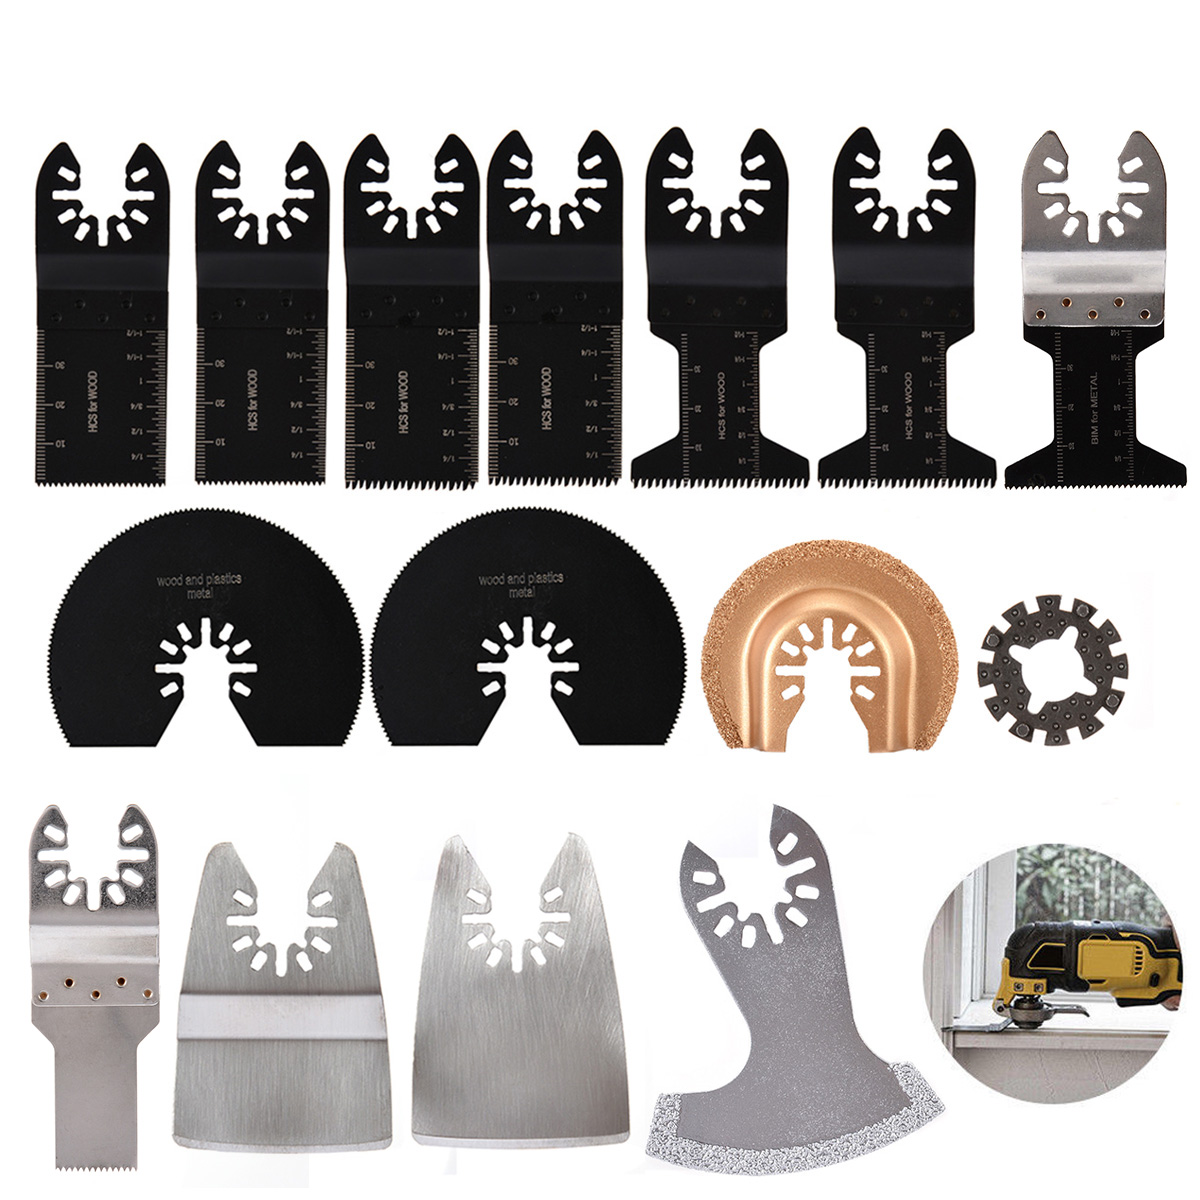 цена на 15pcs Oscillating Multi Tool Saw Blades Universal Cutting Blade Assortment Kit For Wood Plastic Metal Cutting